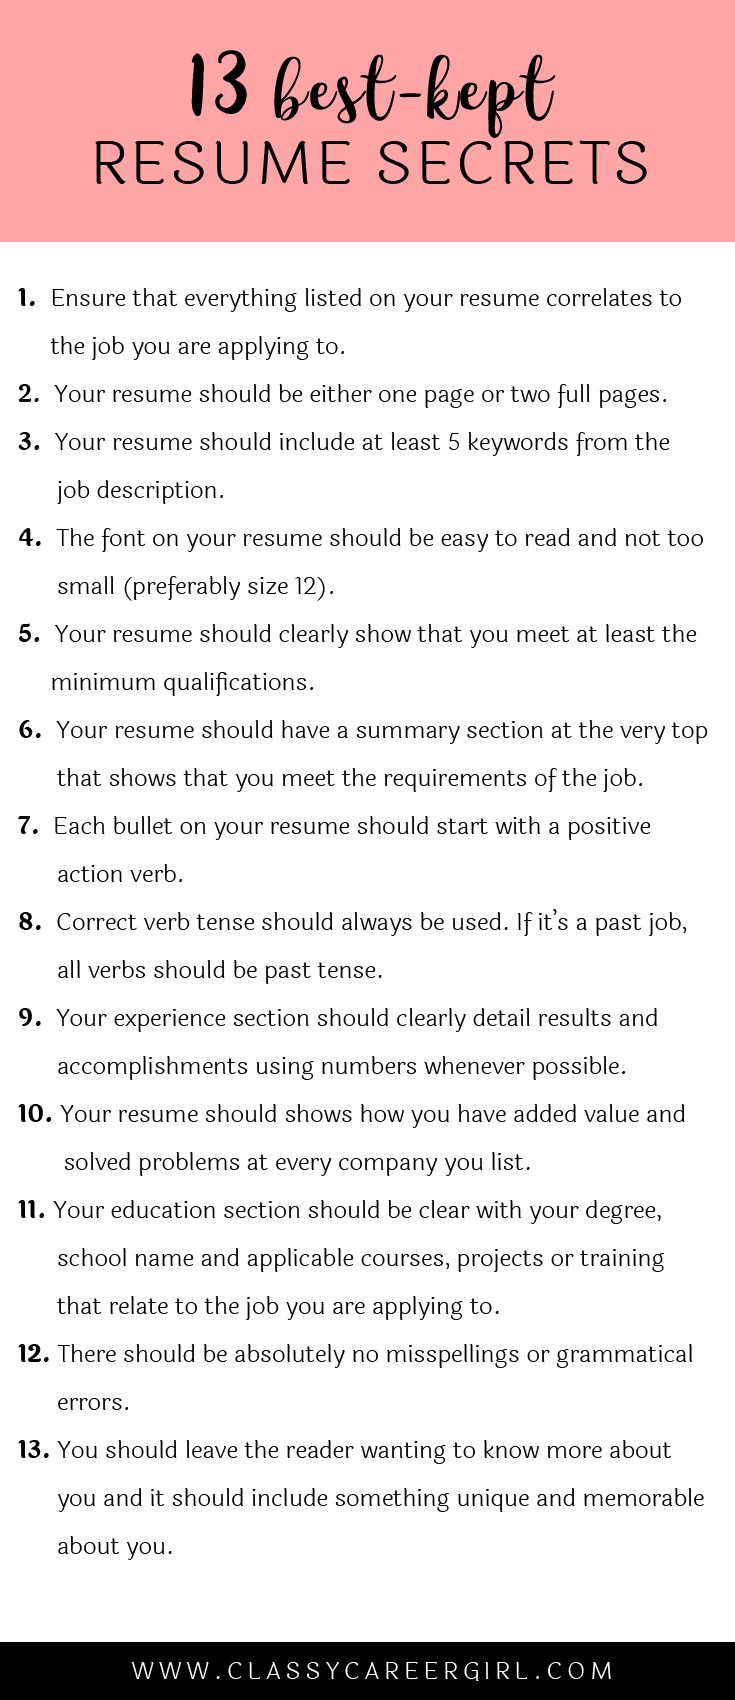 Opposenewapstandardsus  Stunning  Ideas About Resume On Pinterest  Cv Format Resume Cv And  With Handsome Some Hiring Managers Will Toss Your Resume Out If You Dont Know These  With Cute How Do You Create A Resume Also Resume Tips And Tricks In Addition Effective Resume Writing And Optimal Resume Brown Mackie As Well As Resume Site Additionally Account Payable Resume From Pinterestcom With Opposenewapstandardsus  Handsome  Ideas About Resume On Pinterest  Cv Format Resume Cv And  With Cute Some Hiring Managers Will Toss Your Resume Out If You Dont Know These  And Stunning How Do You Create A Resume Also Resume Tips And Tricks In Addition Effective Resume Writing From Pinterestcom